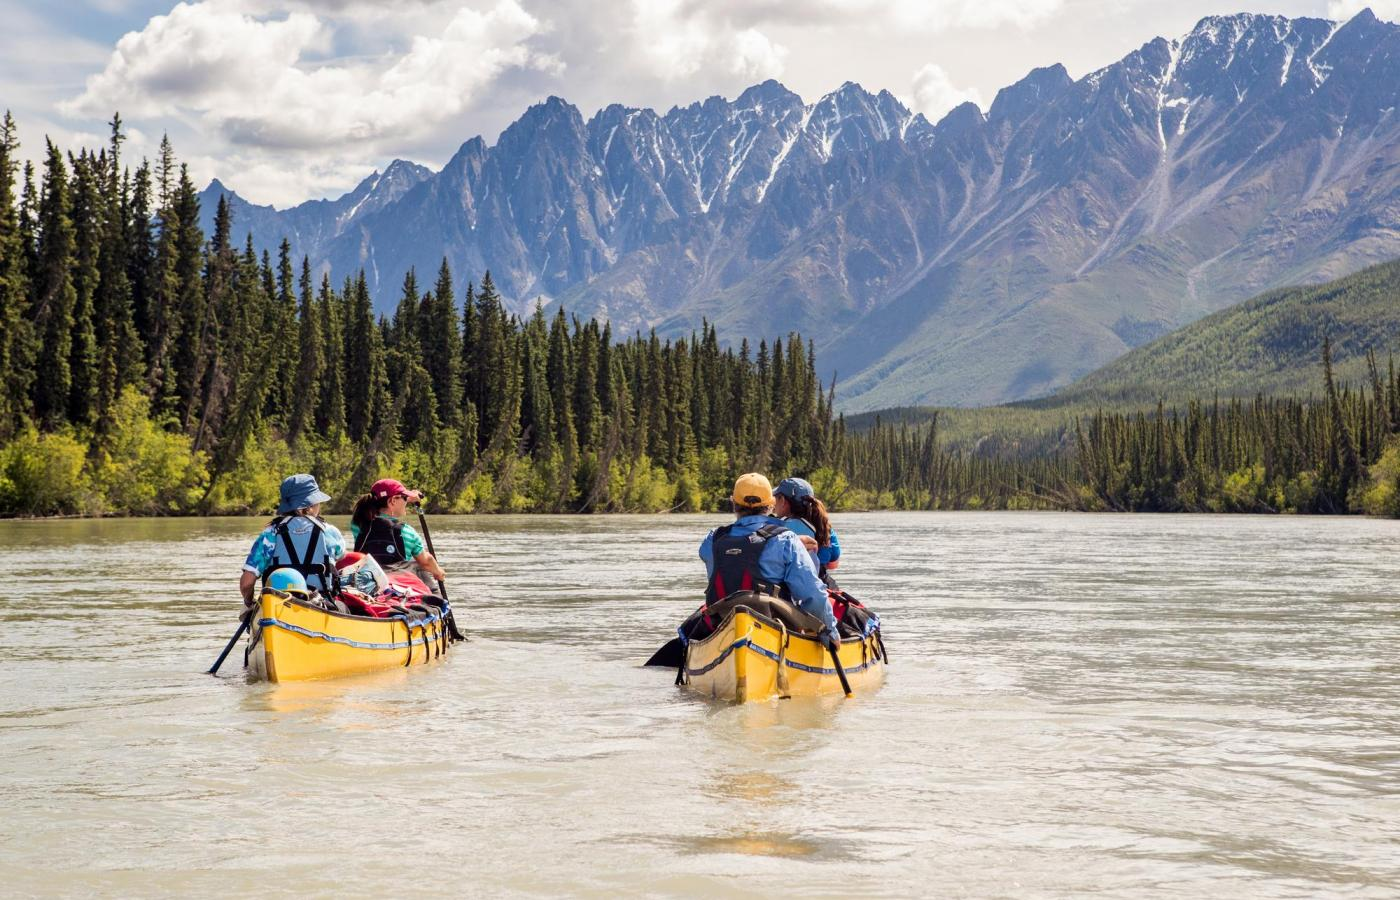 two canoes paddle down the nahanni river with mountains looming in the background